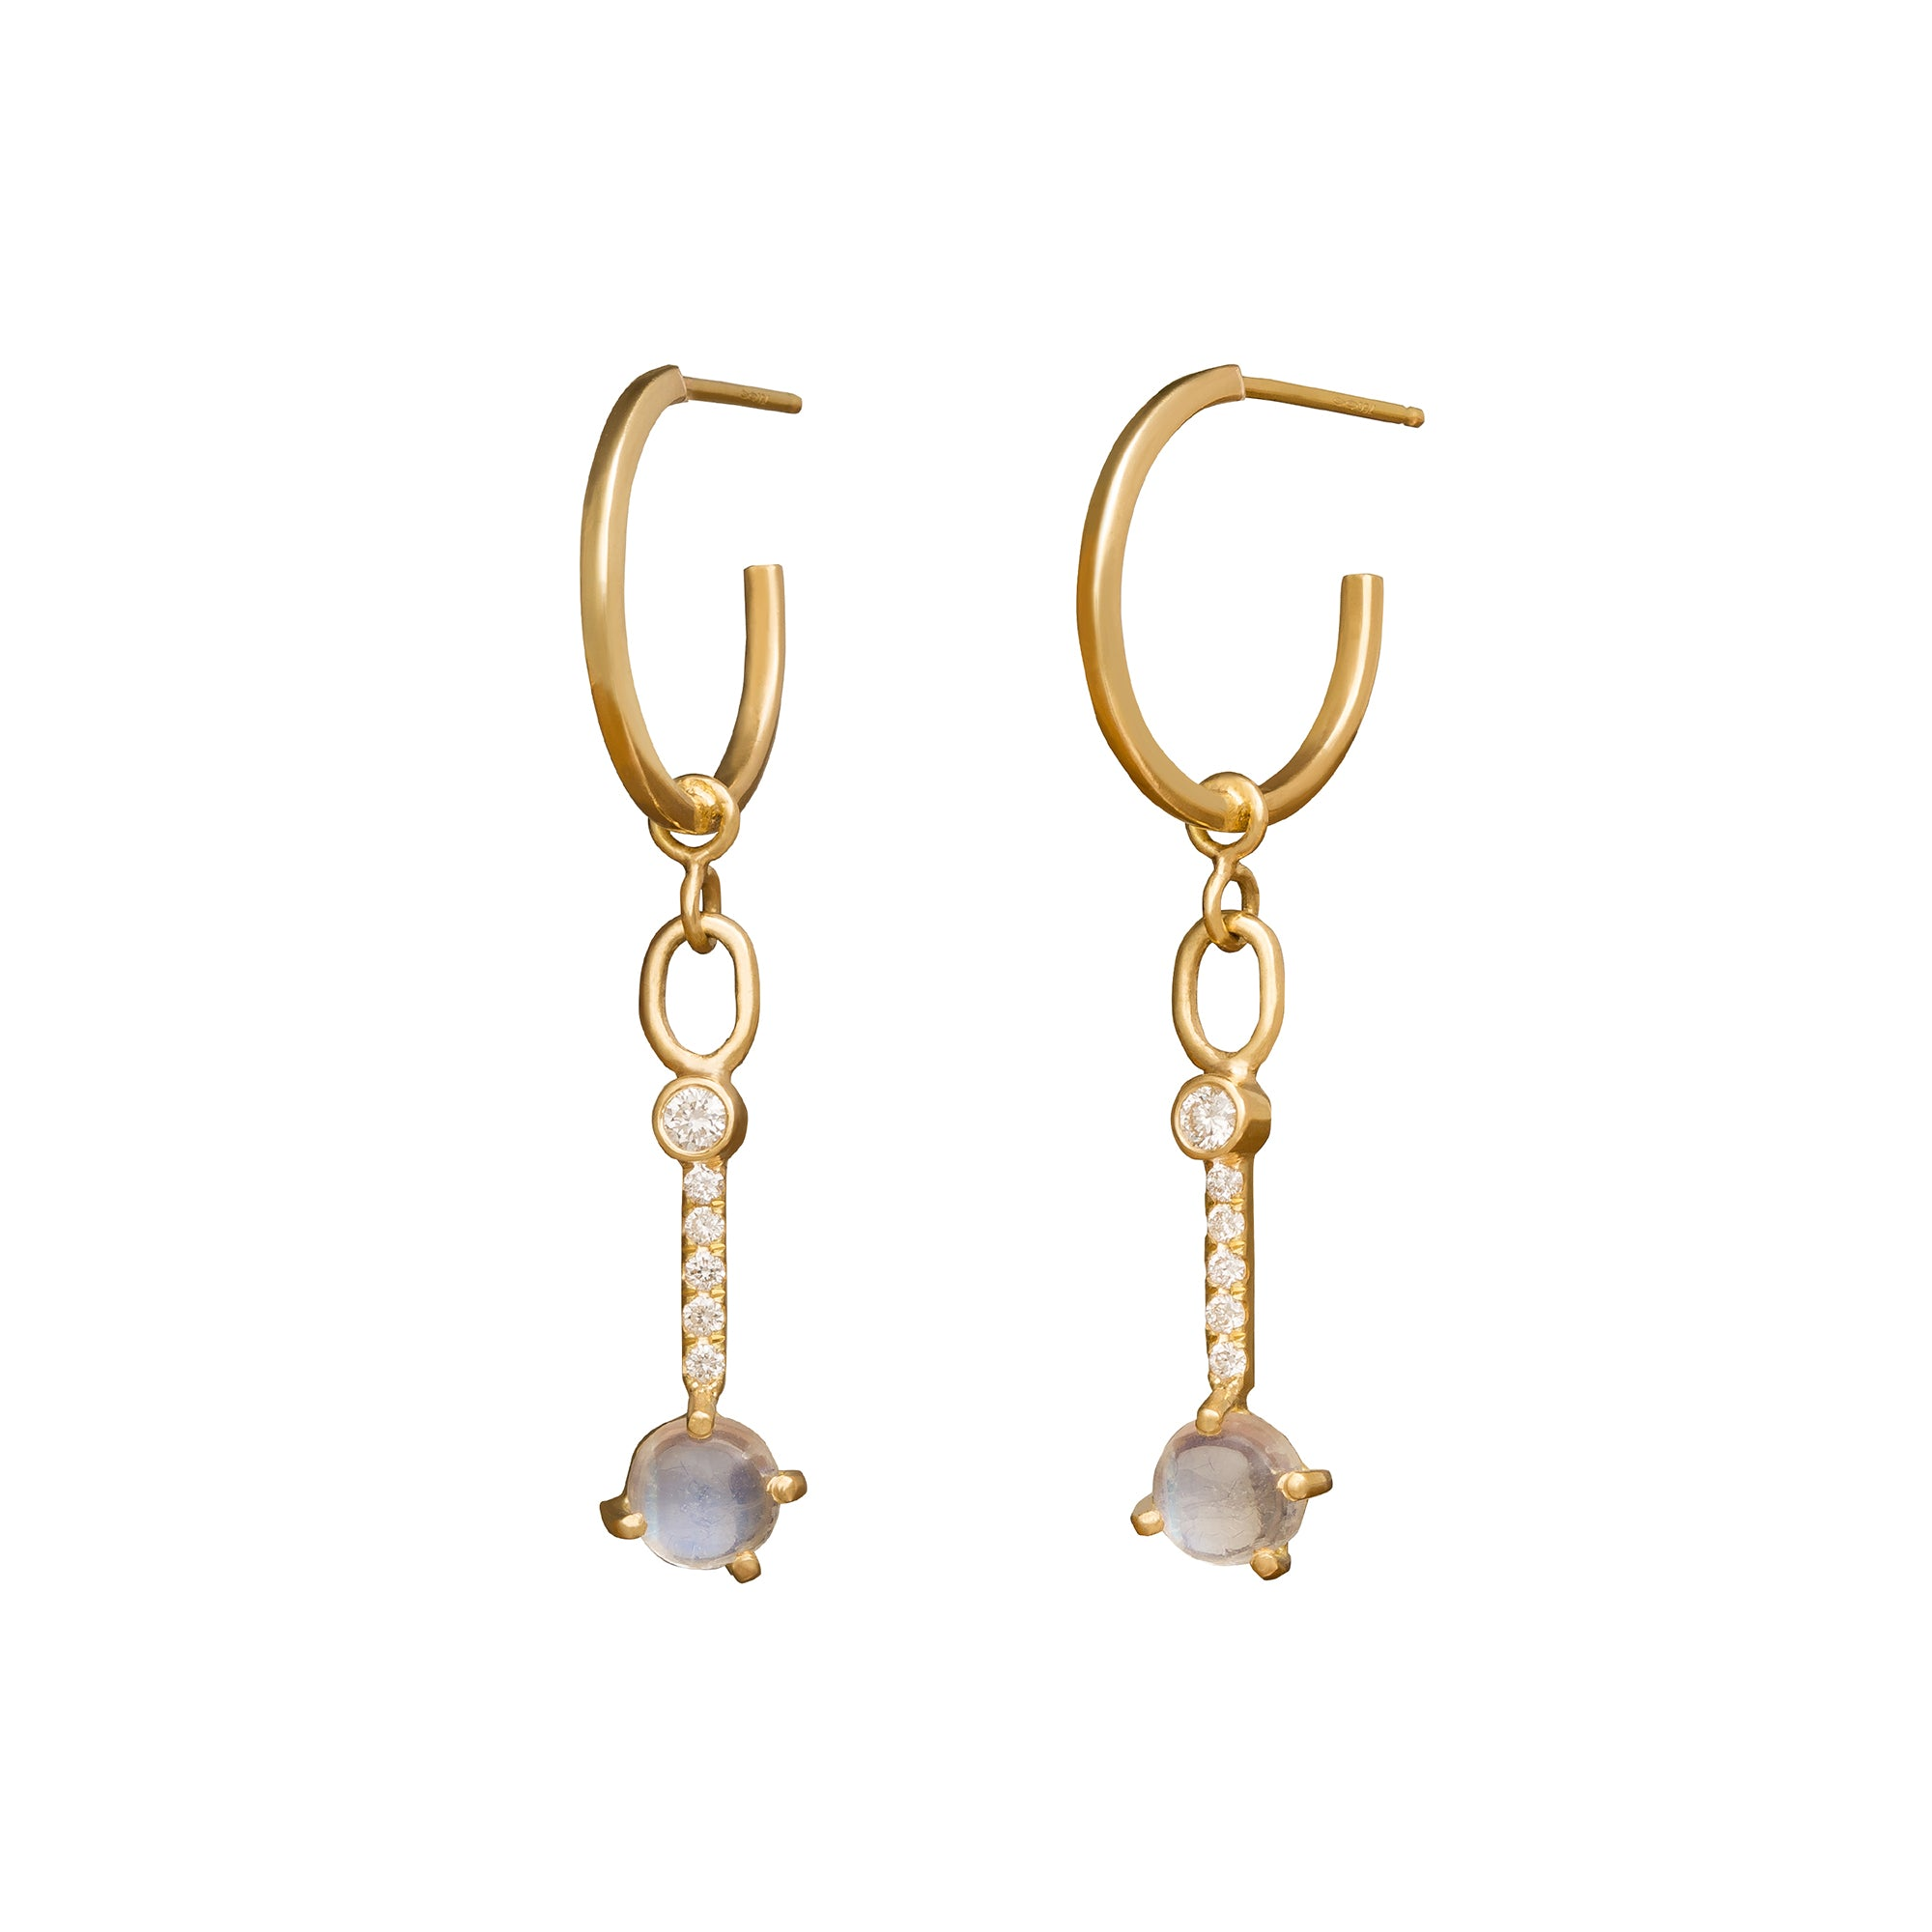 Katey Walker Moonstone Hoops - Earrings - Broken English Jewelry